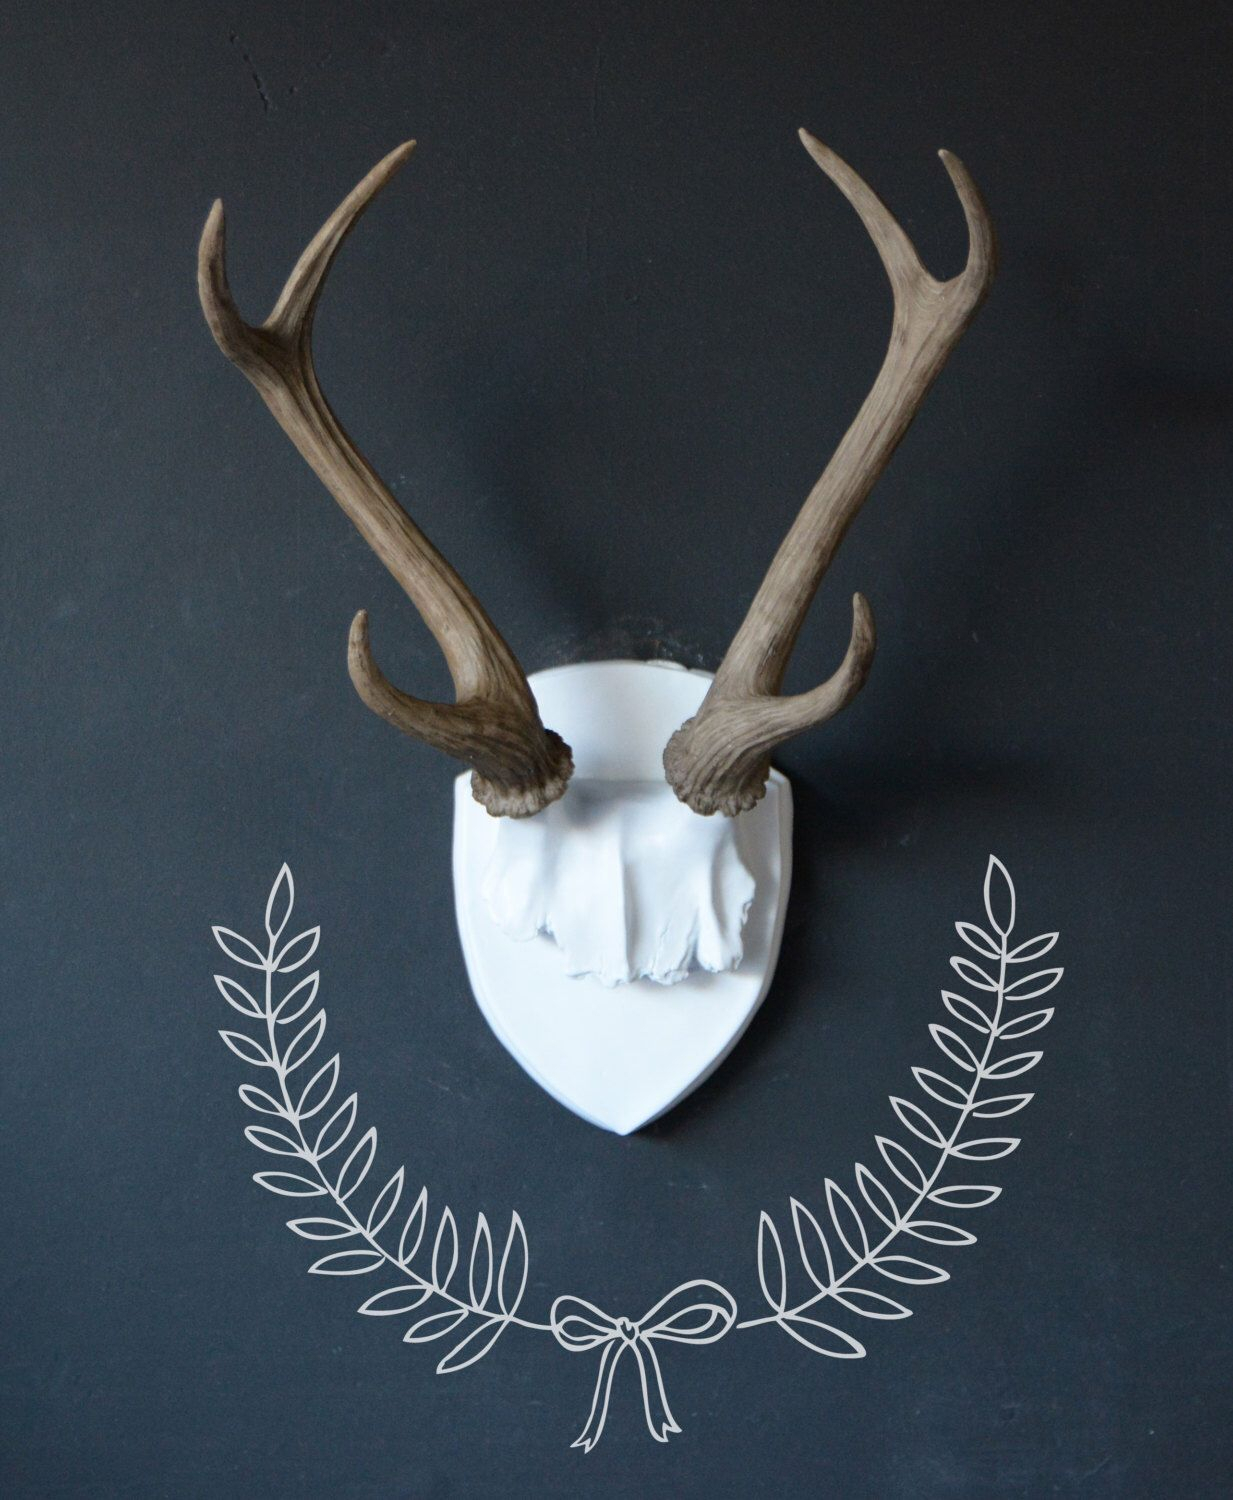 Large Faux Deer Antler Mount, White Plaque With Natural Antlers In Most Recently Released Atlantis Faux Taxidermy Wall Decor (View 8 of 20)